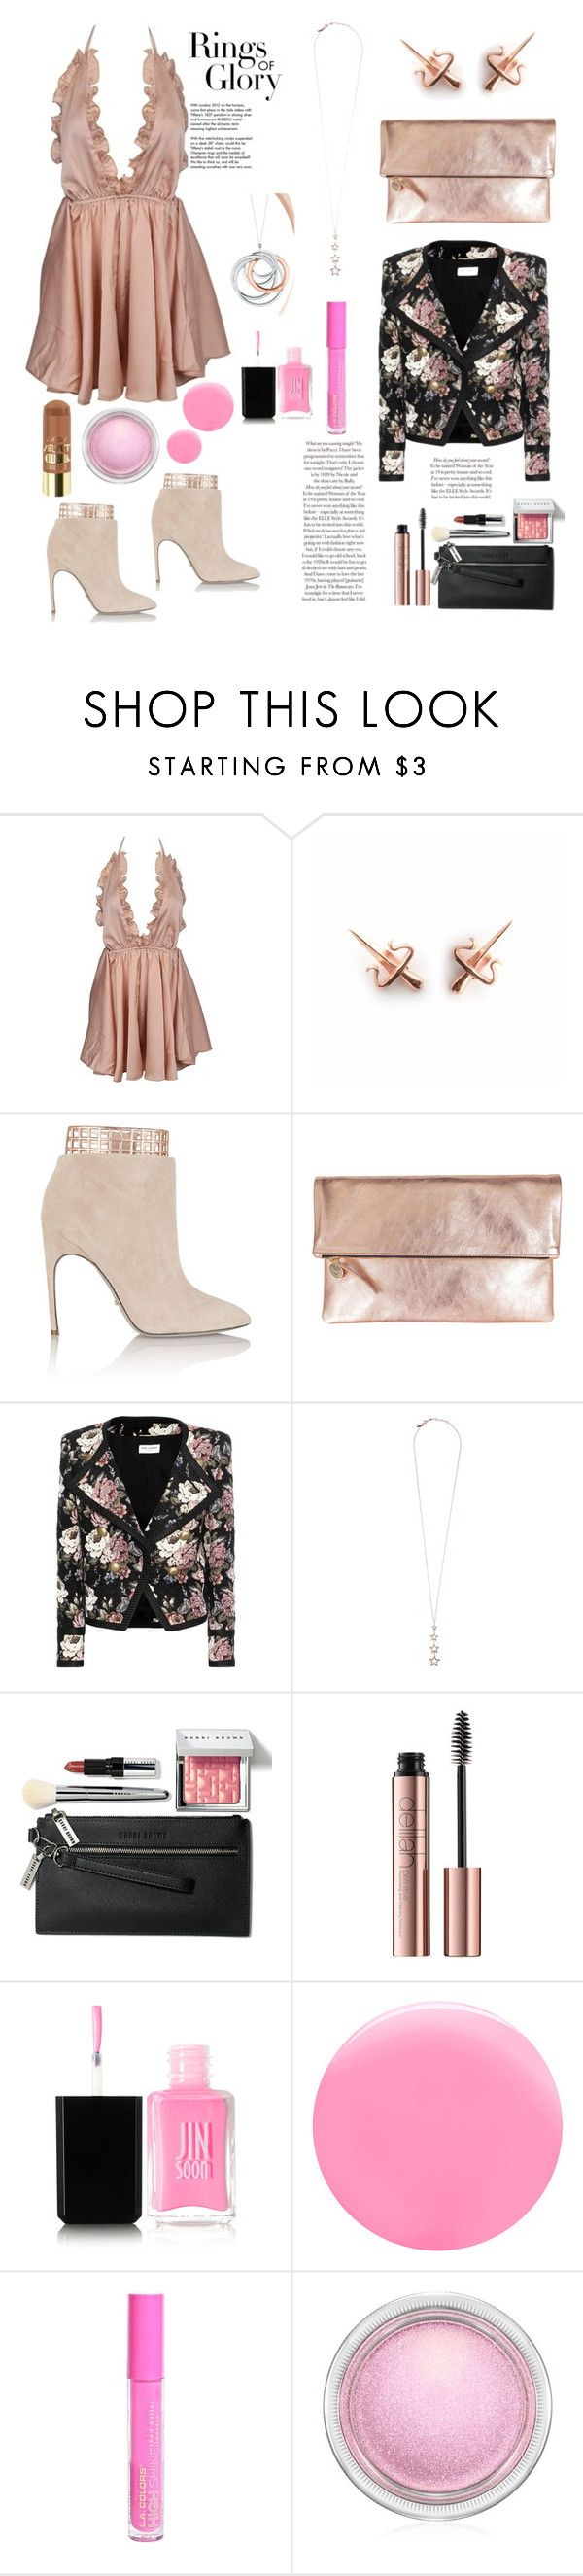 """""""Rings of Glory"""" by felicitysparks ❤ liked on Polyvore featuring LeiVanKash, Sergio Rossi, Clare V., Yves Saint Laurent, Tada & Toy, Bobbi Brown Cosmetics, Tiffany & Co., JINsoon, L.A. Colors and MAC Cosmetics"""